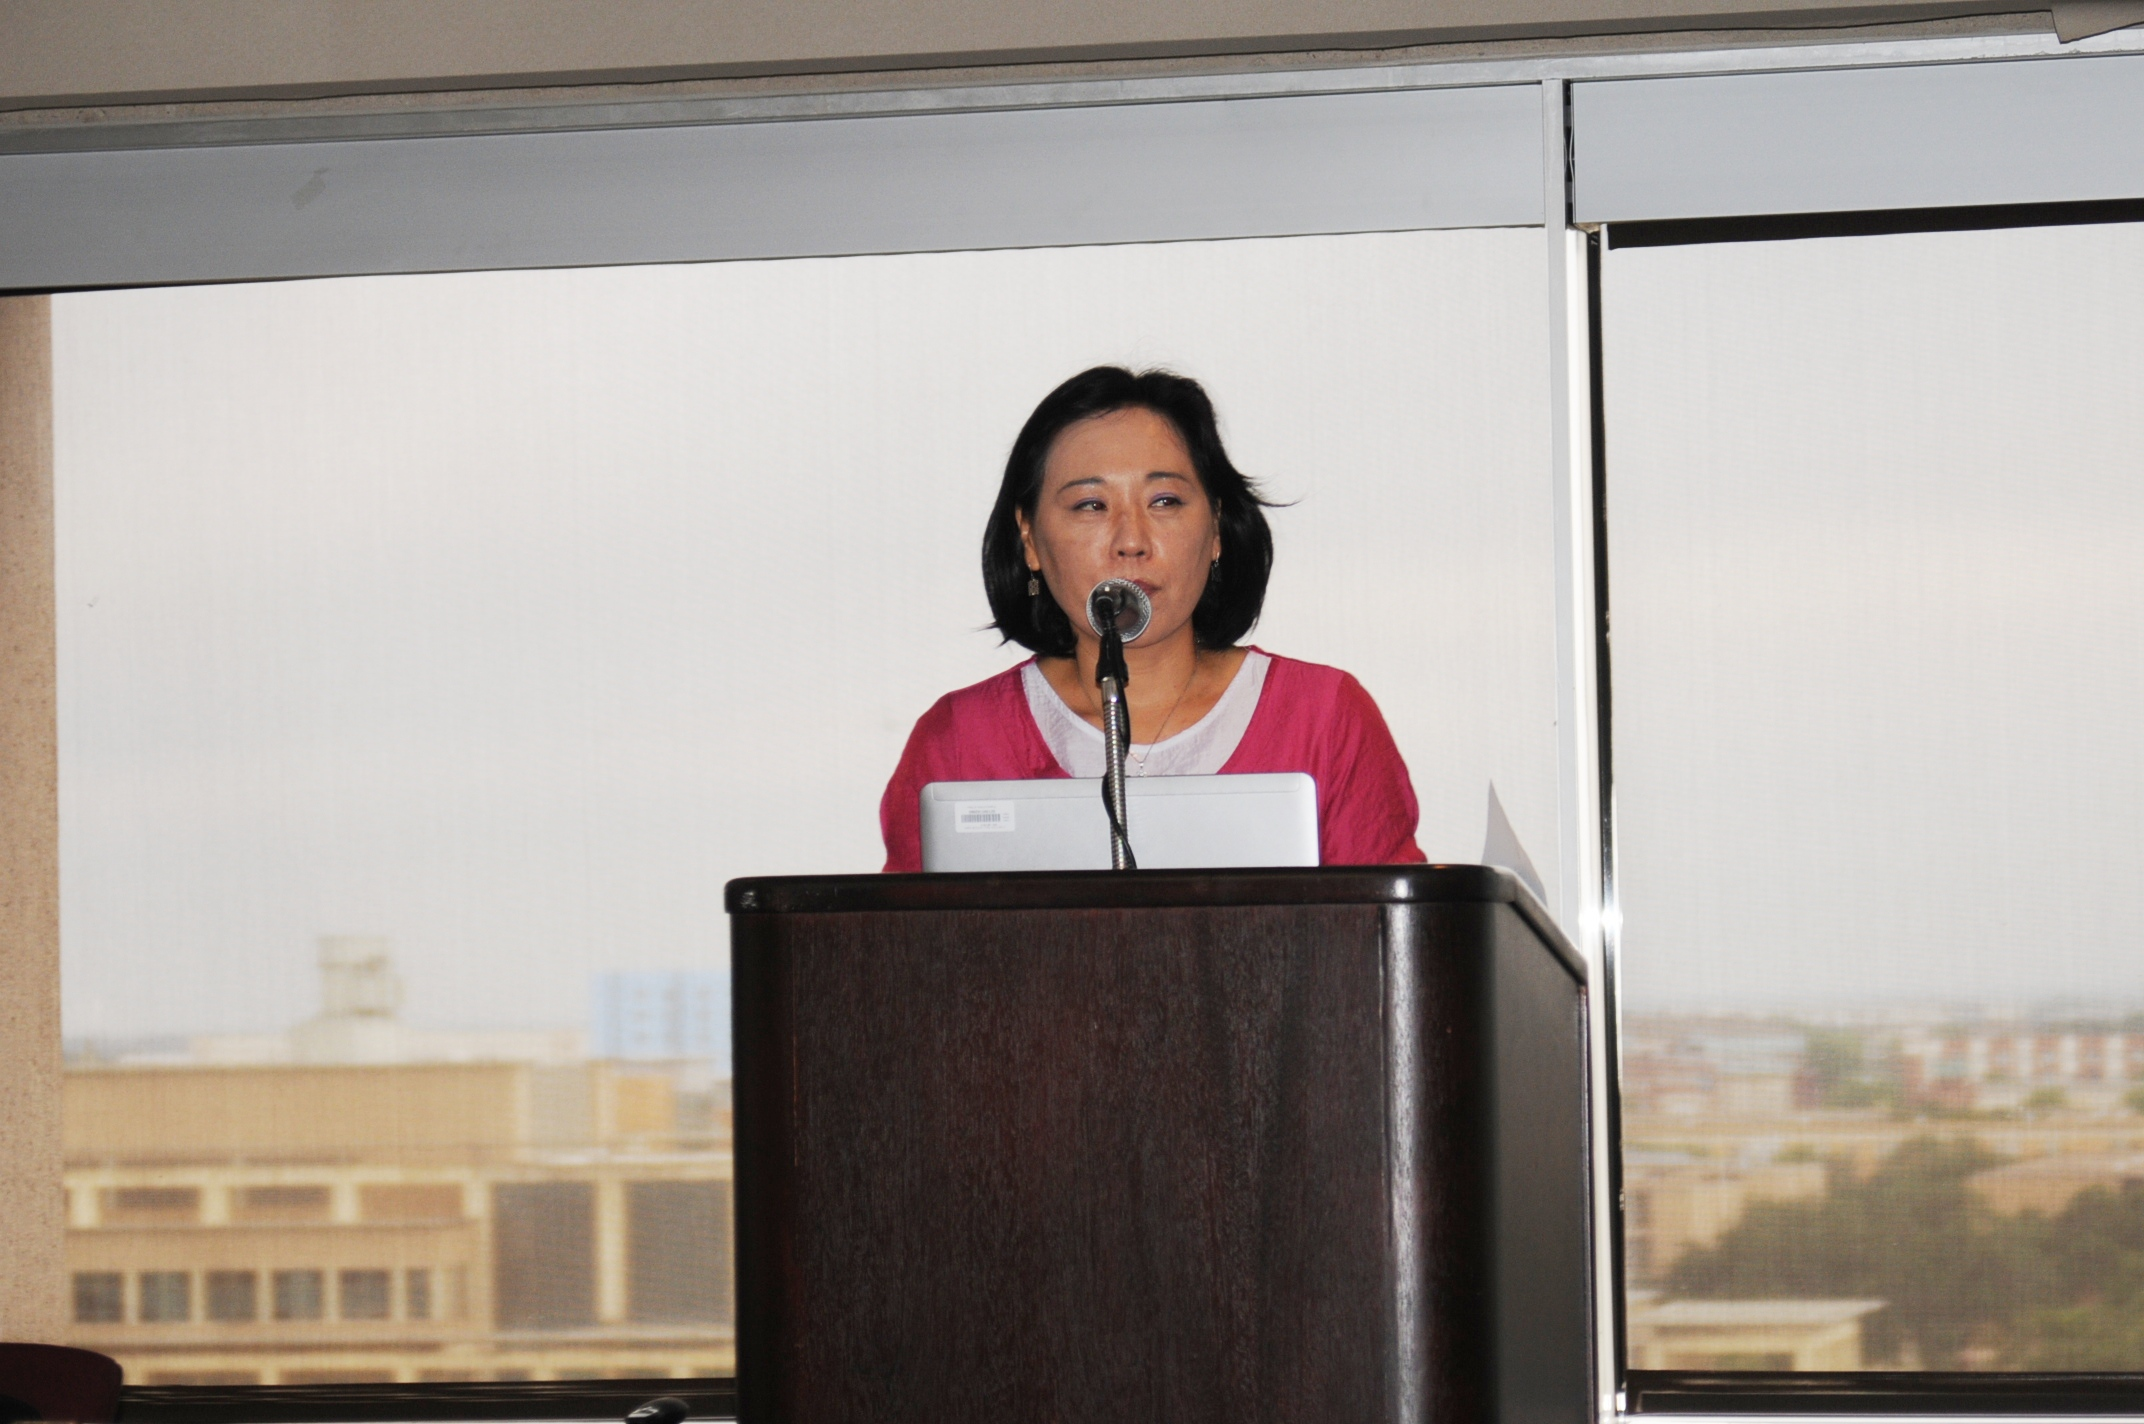 Ms. Amy Chen,  President of CLTA-TX